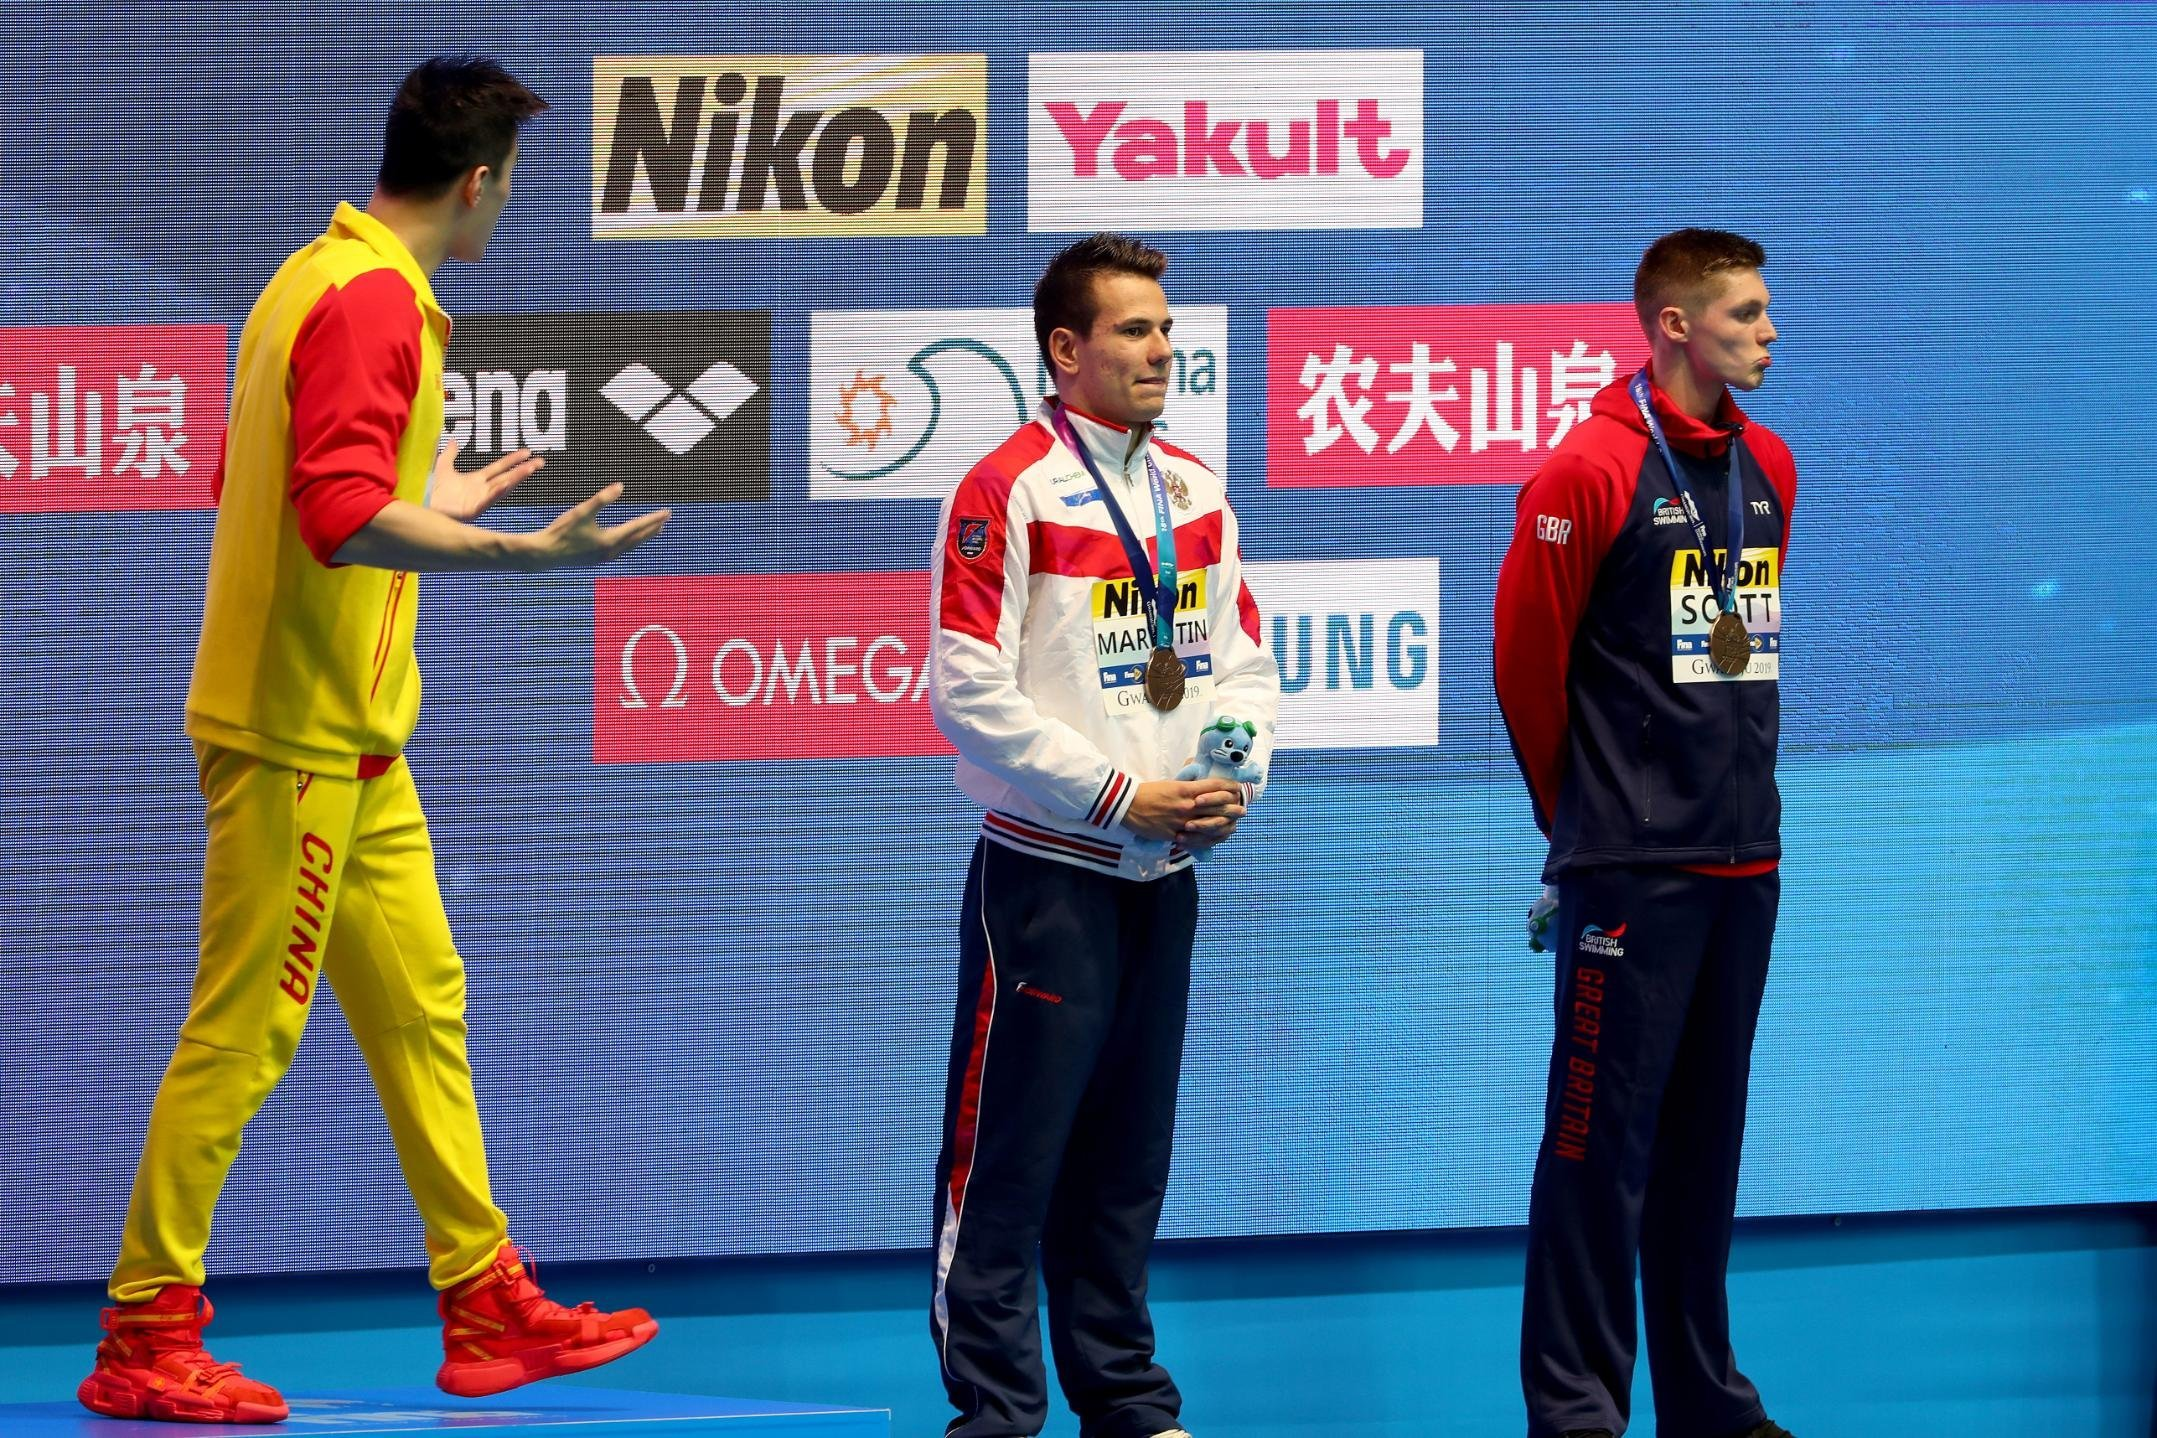 Controversial swimming star Sun Yang reacts angrily after opponent refuses to share podium